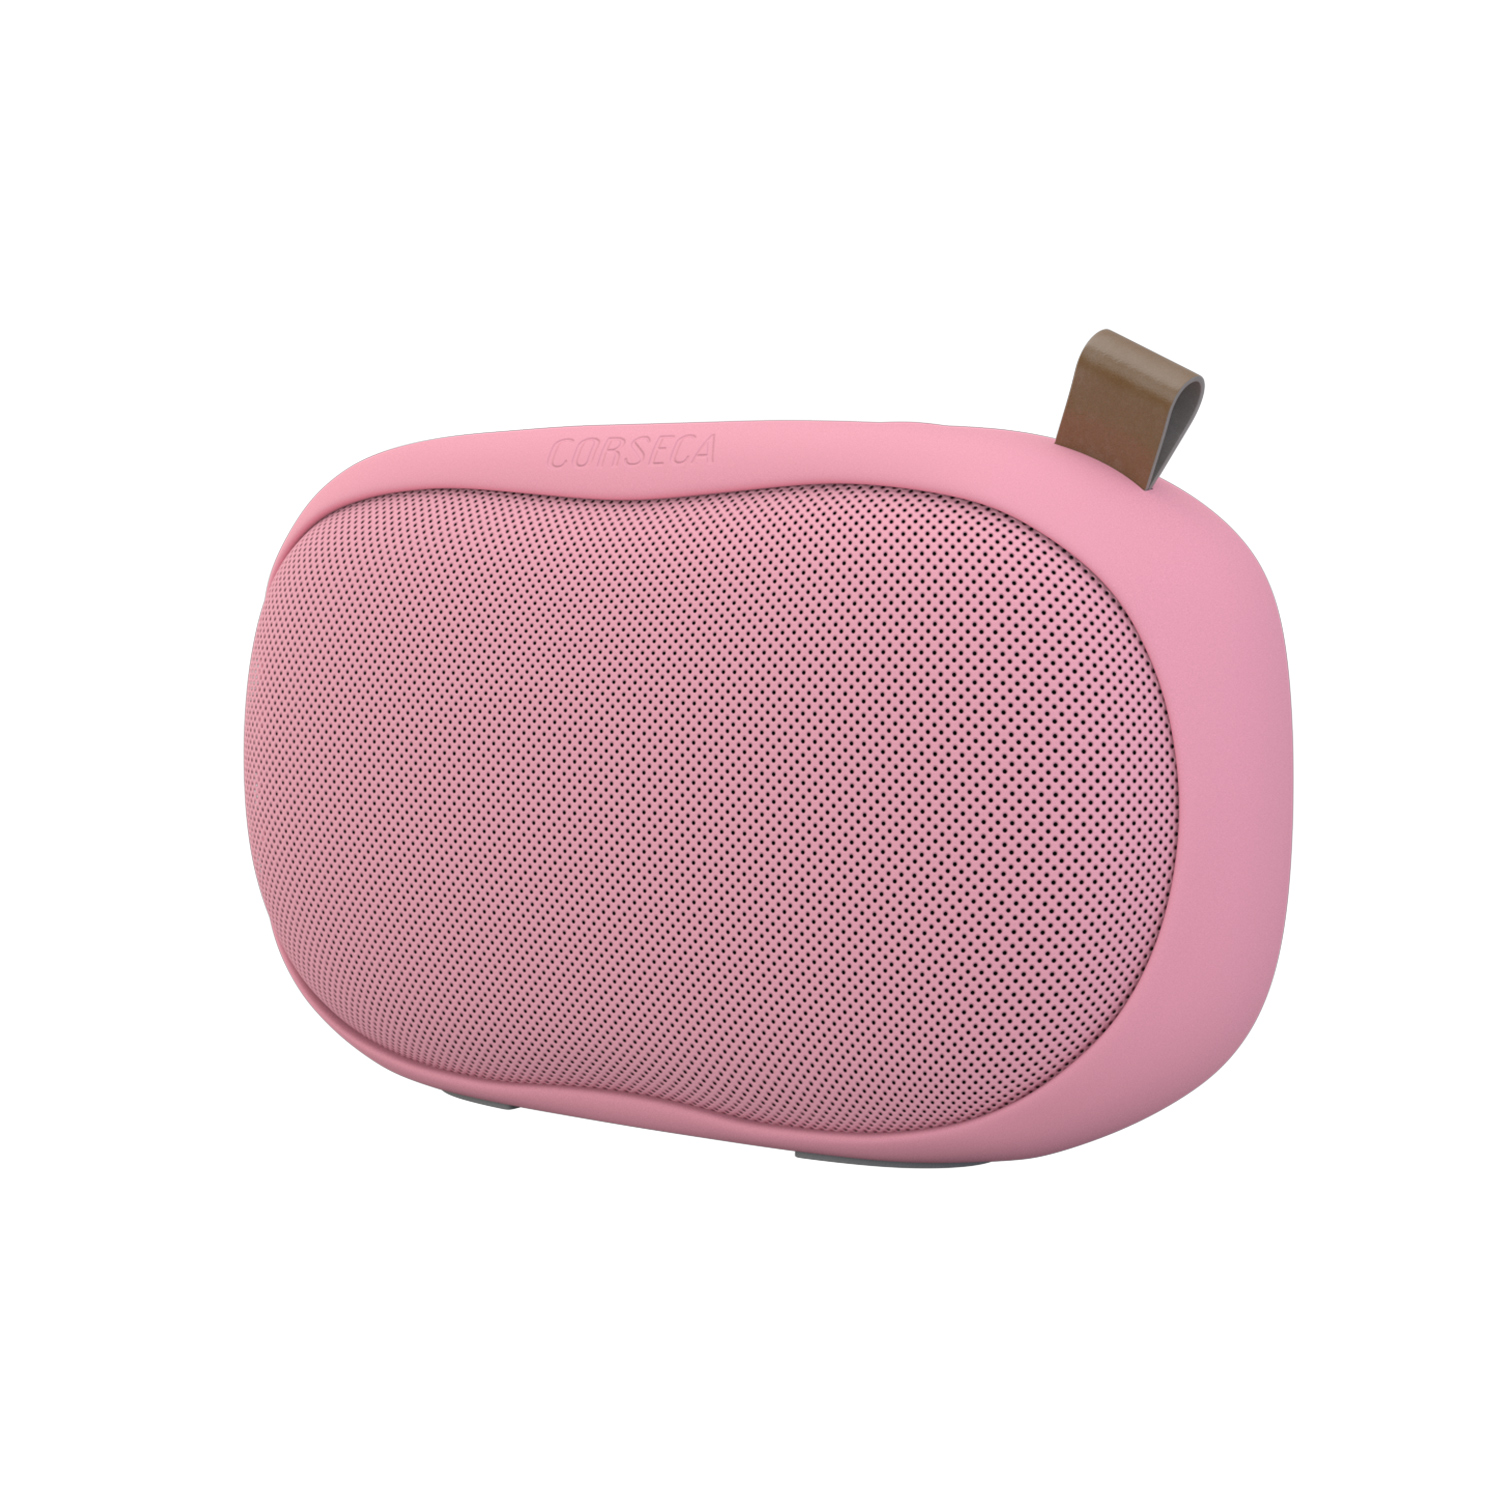 Corseca Sushi 10W Wireless Portable Bluetooth Speaker with FM Radio HD Sound and Deep Bass with Built-in Mic SD Card and Aux (Pink)